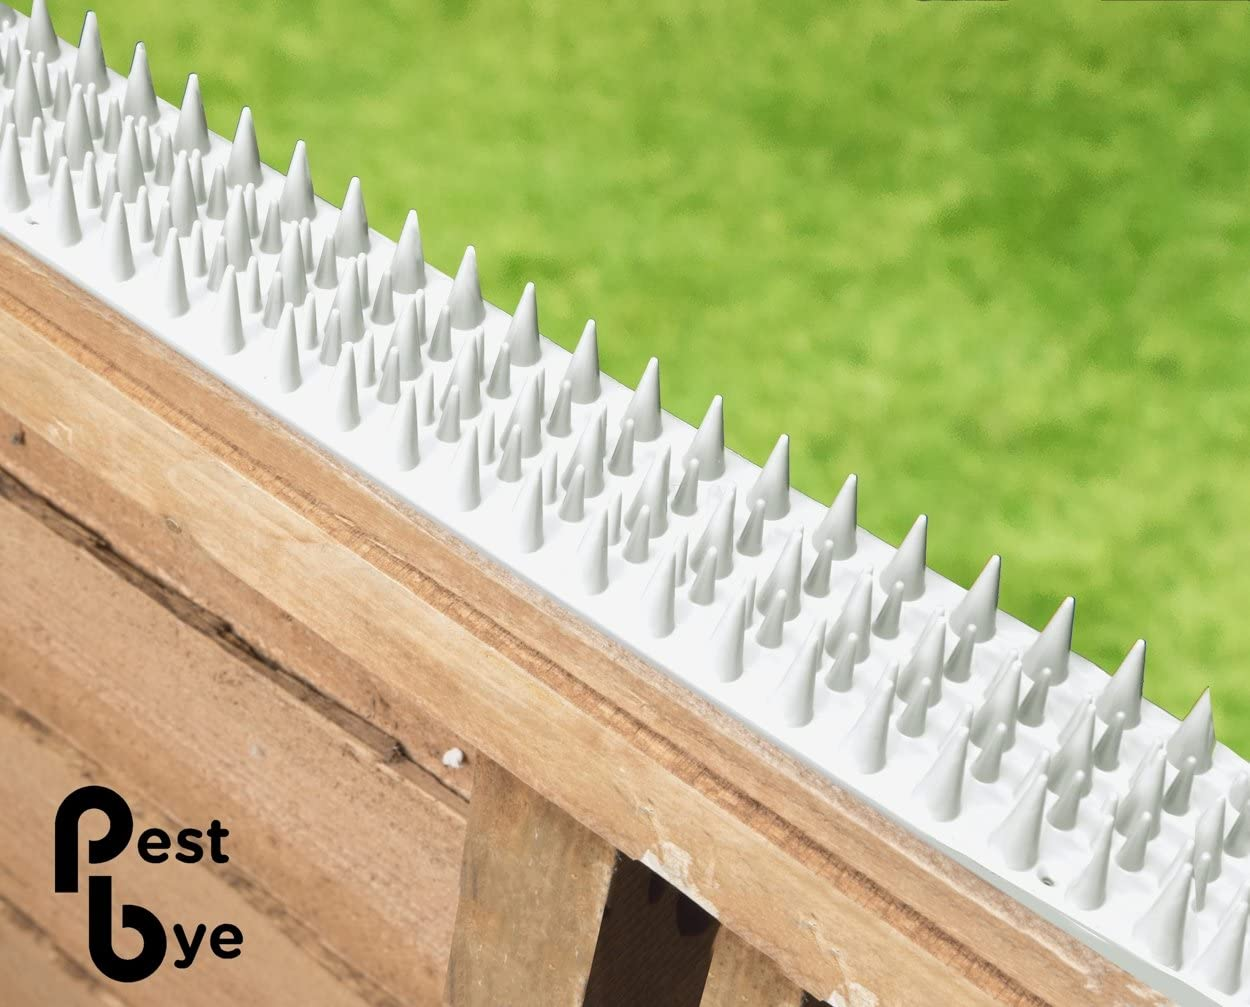 TheOutDoorShop Cat Repeller Fence and Wall Spikes – Strip of 8 White